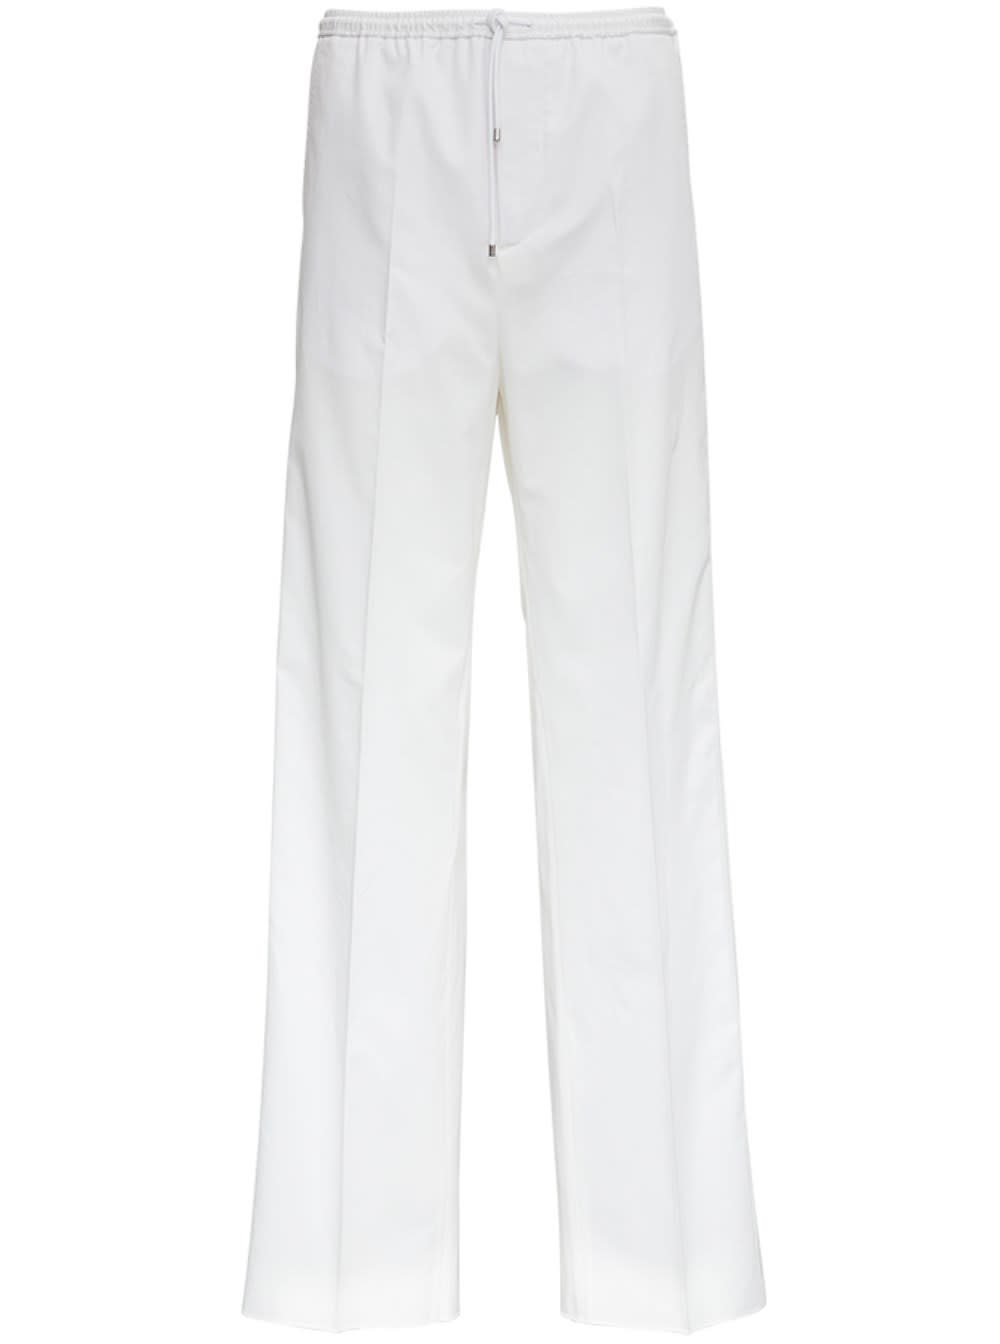 Valentino Loose Fit Cotton Pants With Drawstring In White